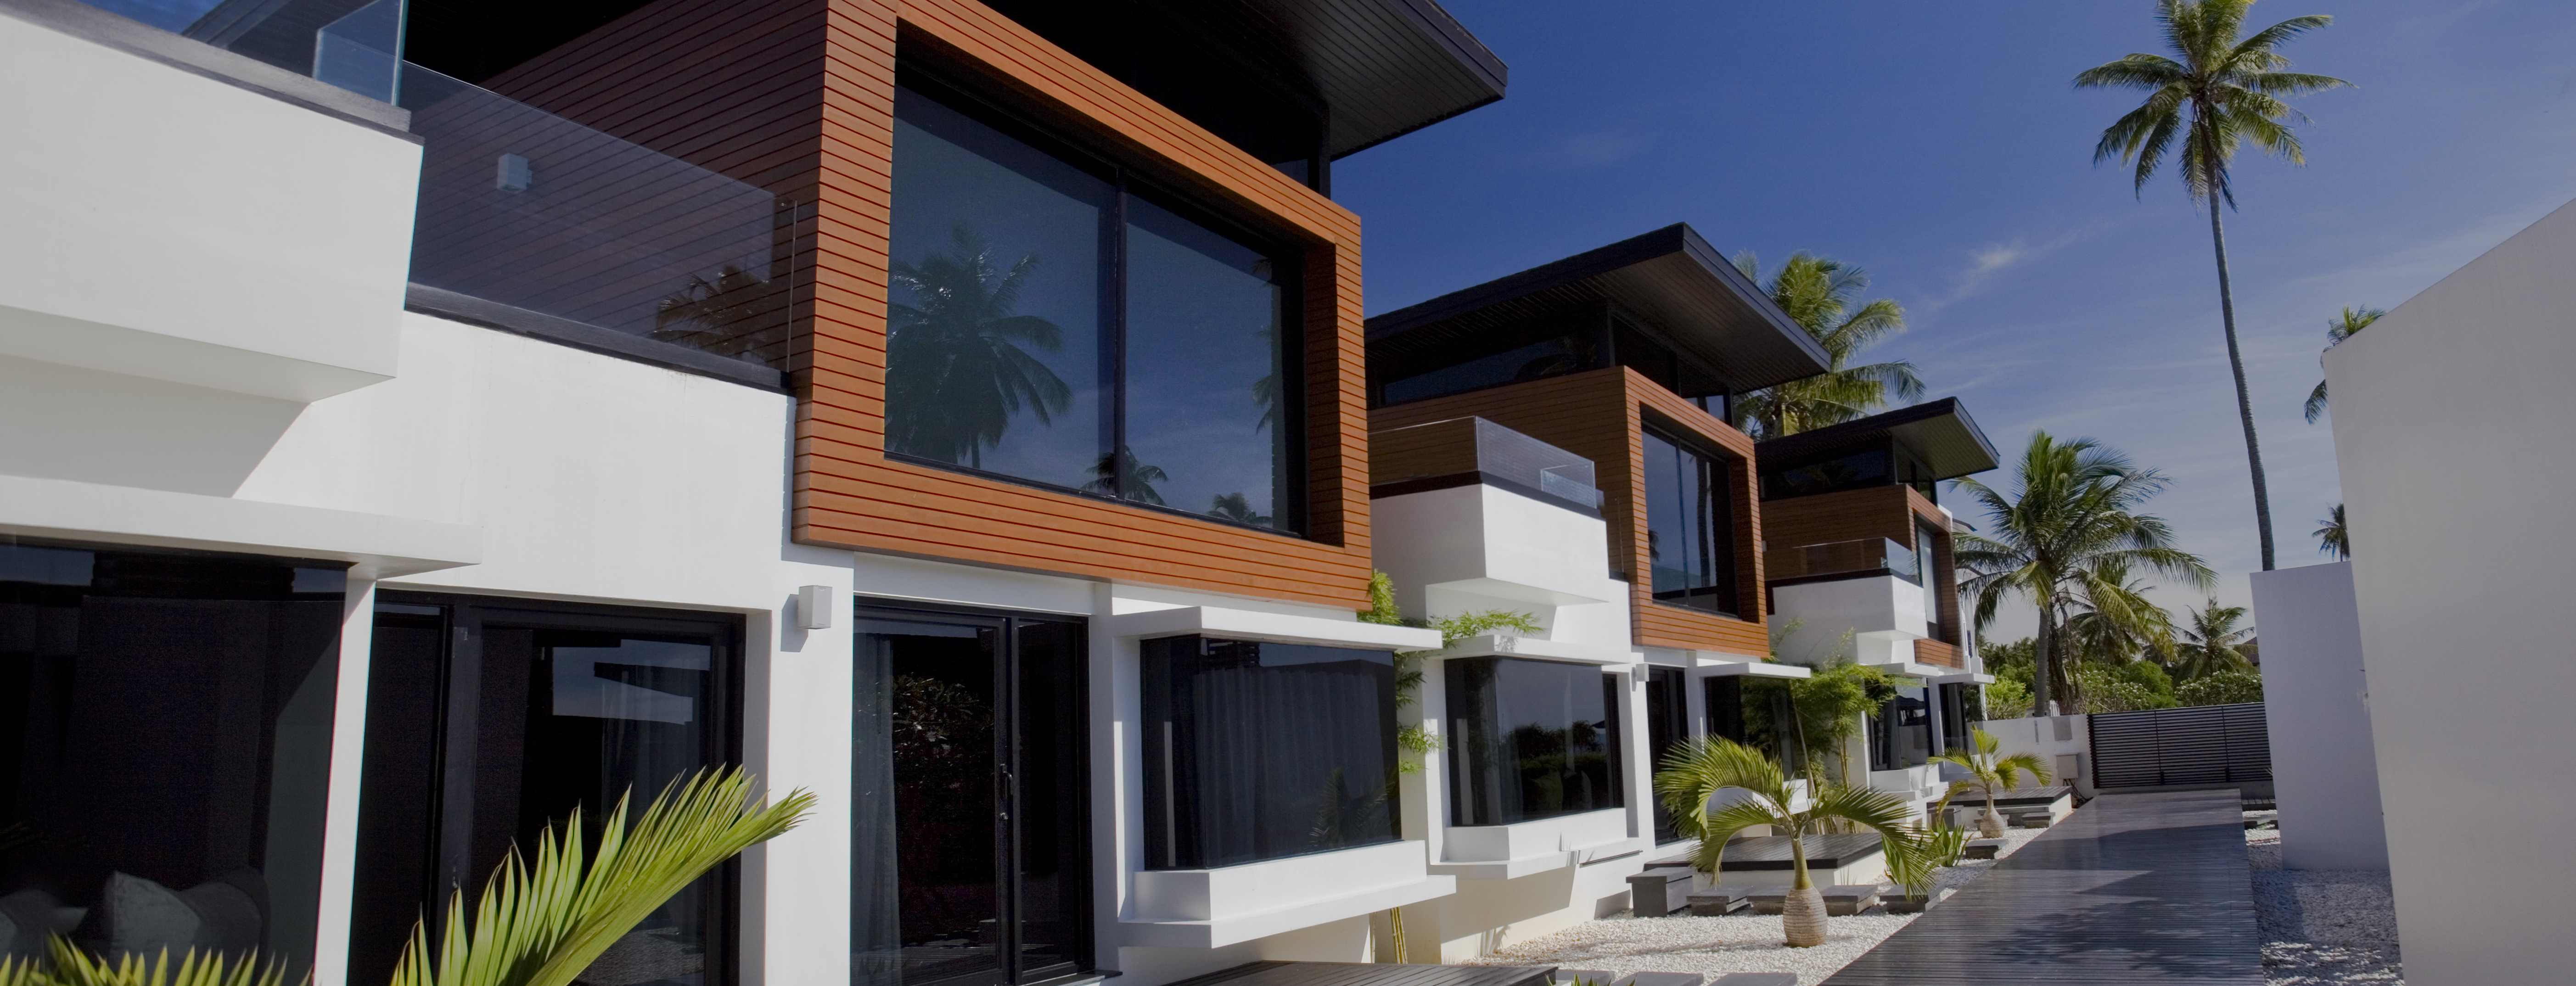 aava-resort-Family-Villa-exterior